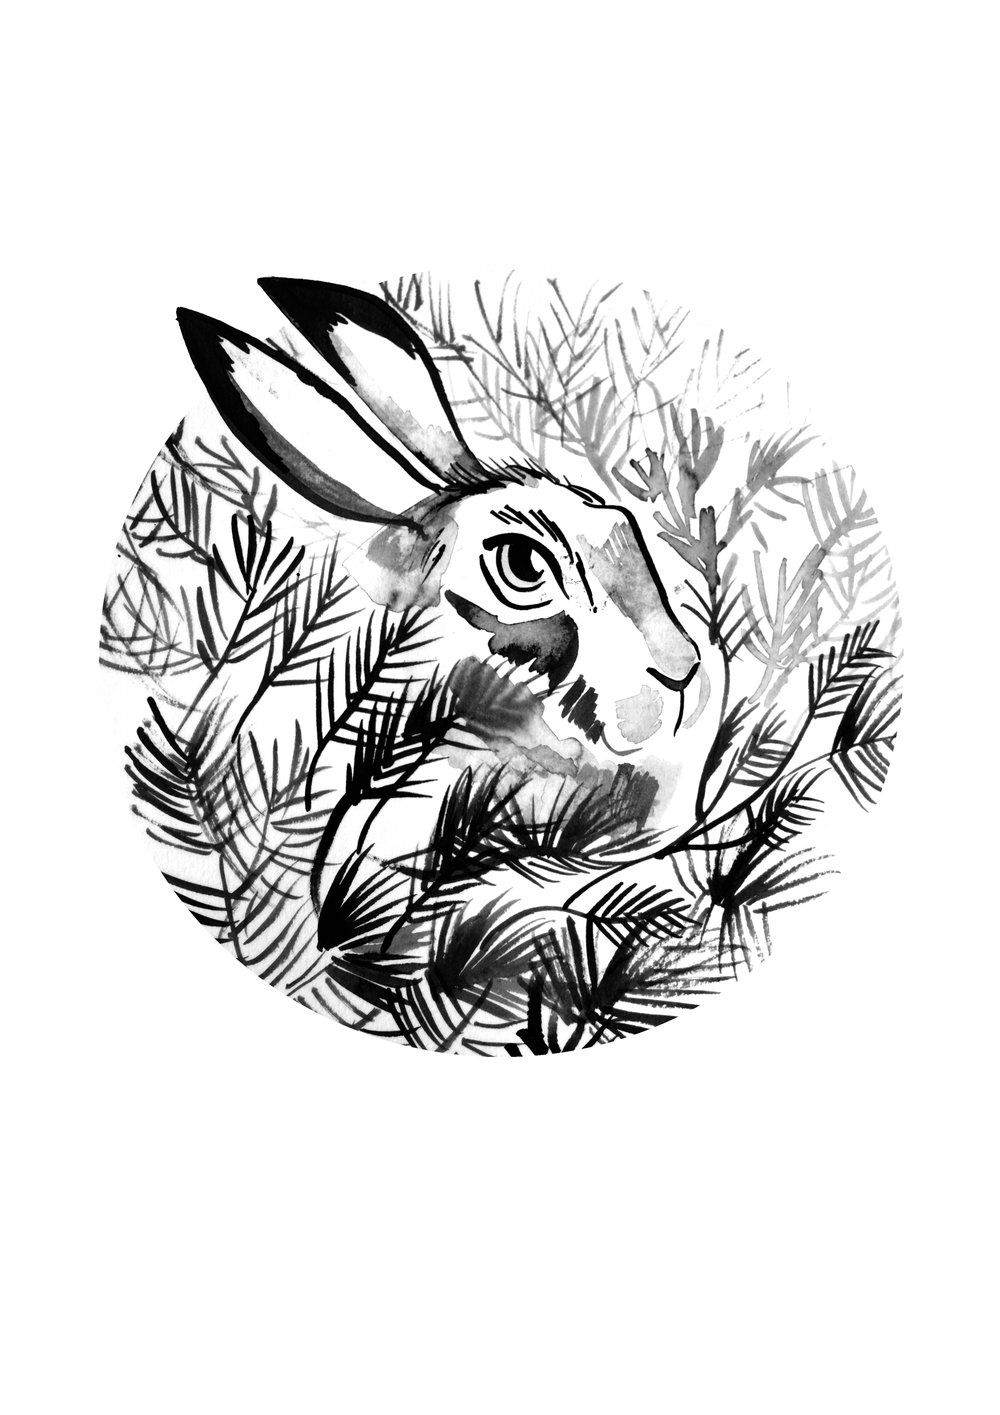 28.-hare_giclee_b&w_a4_potter.jpg